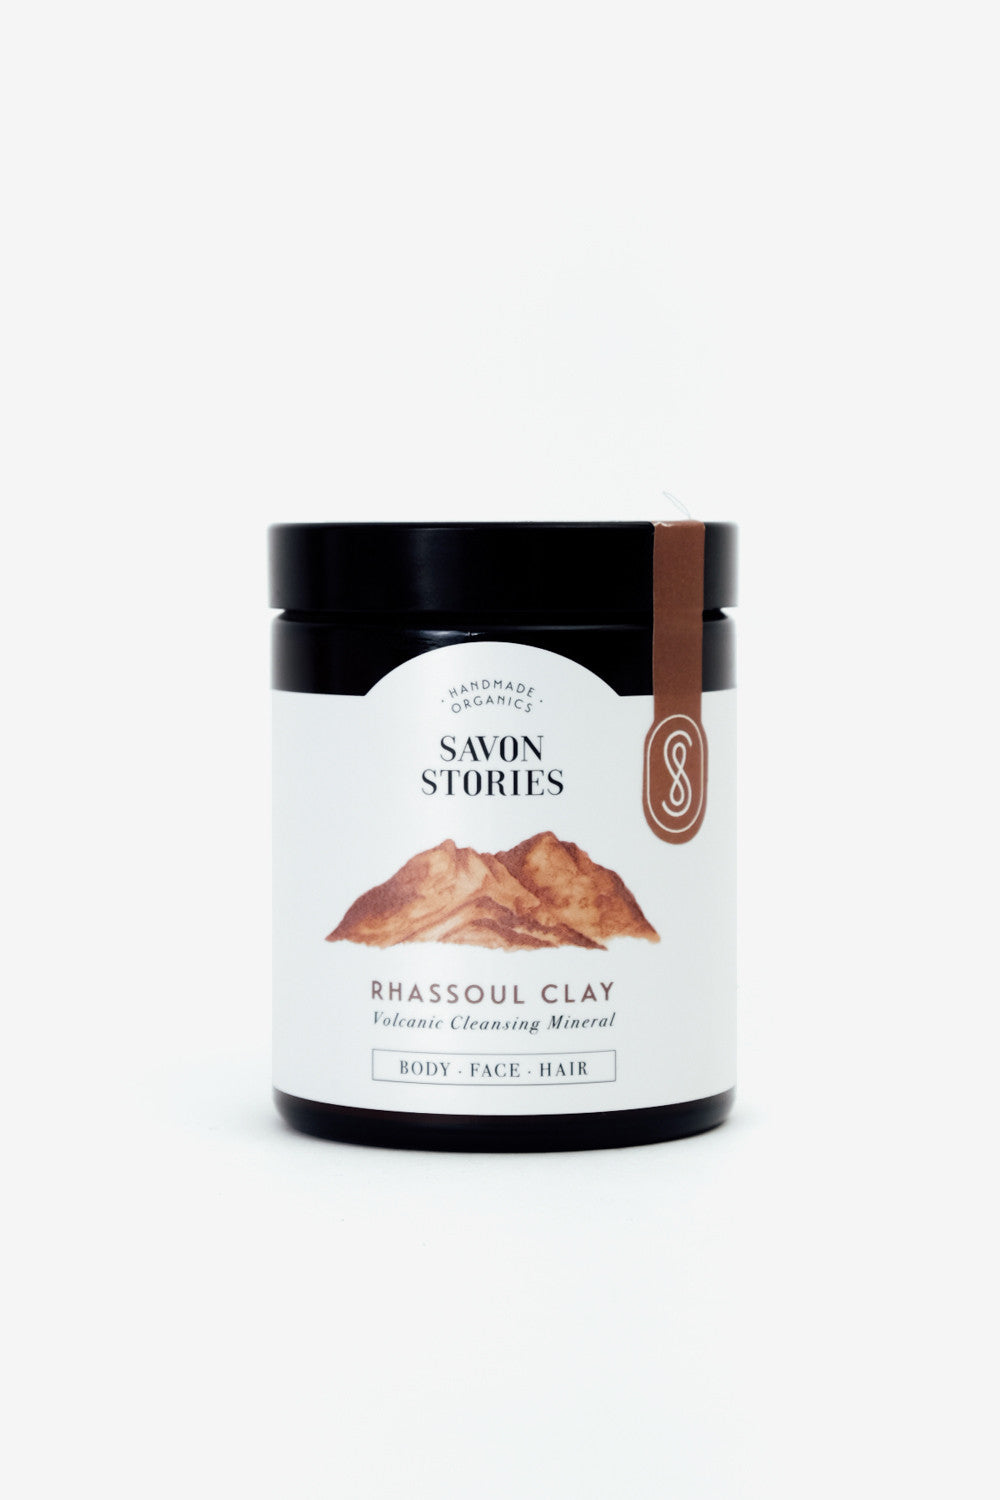 Rhassoul Clay, Personal Care, Savon Stories - Six and Sons